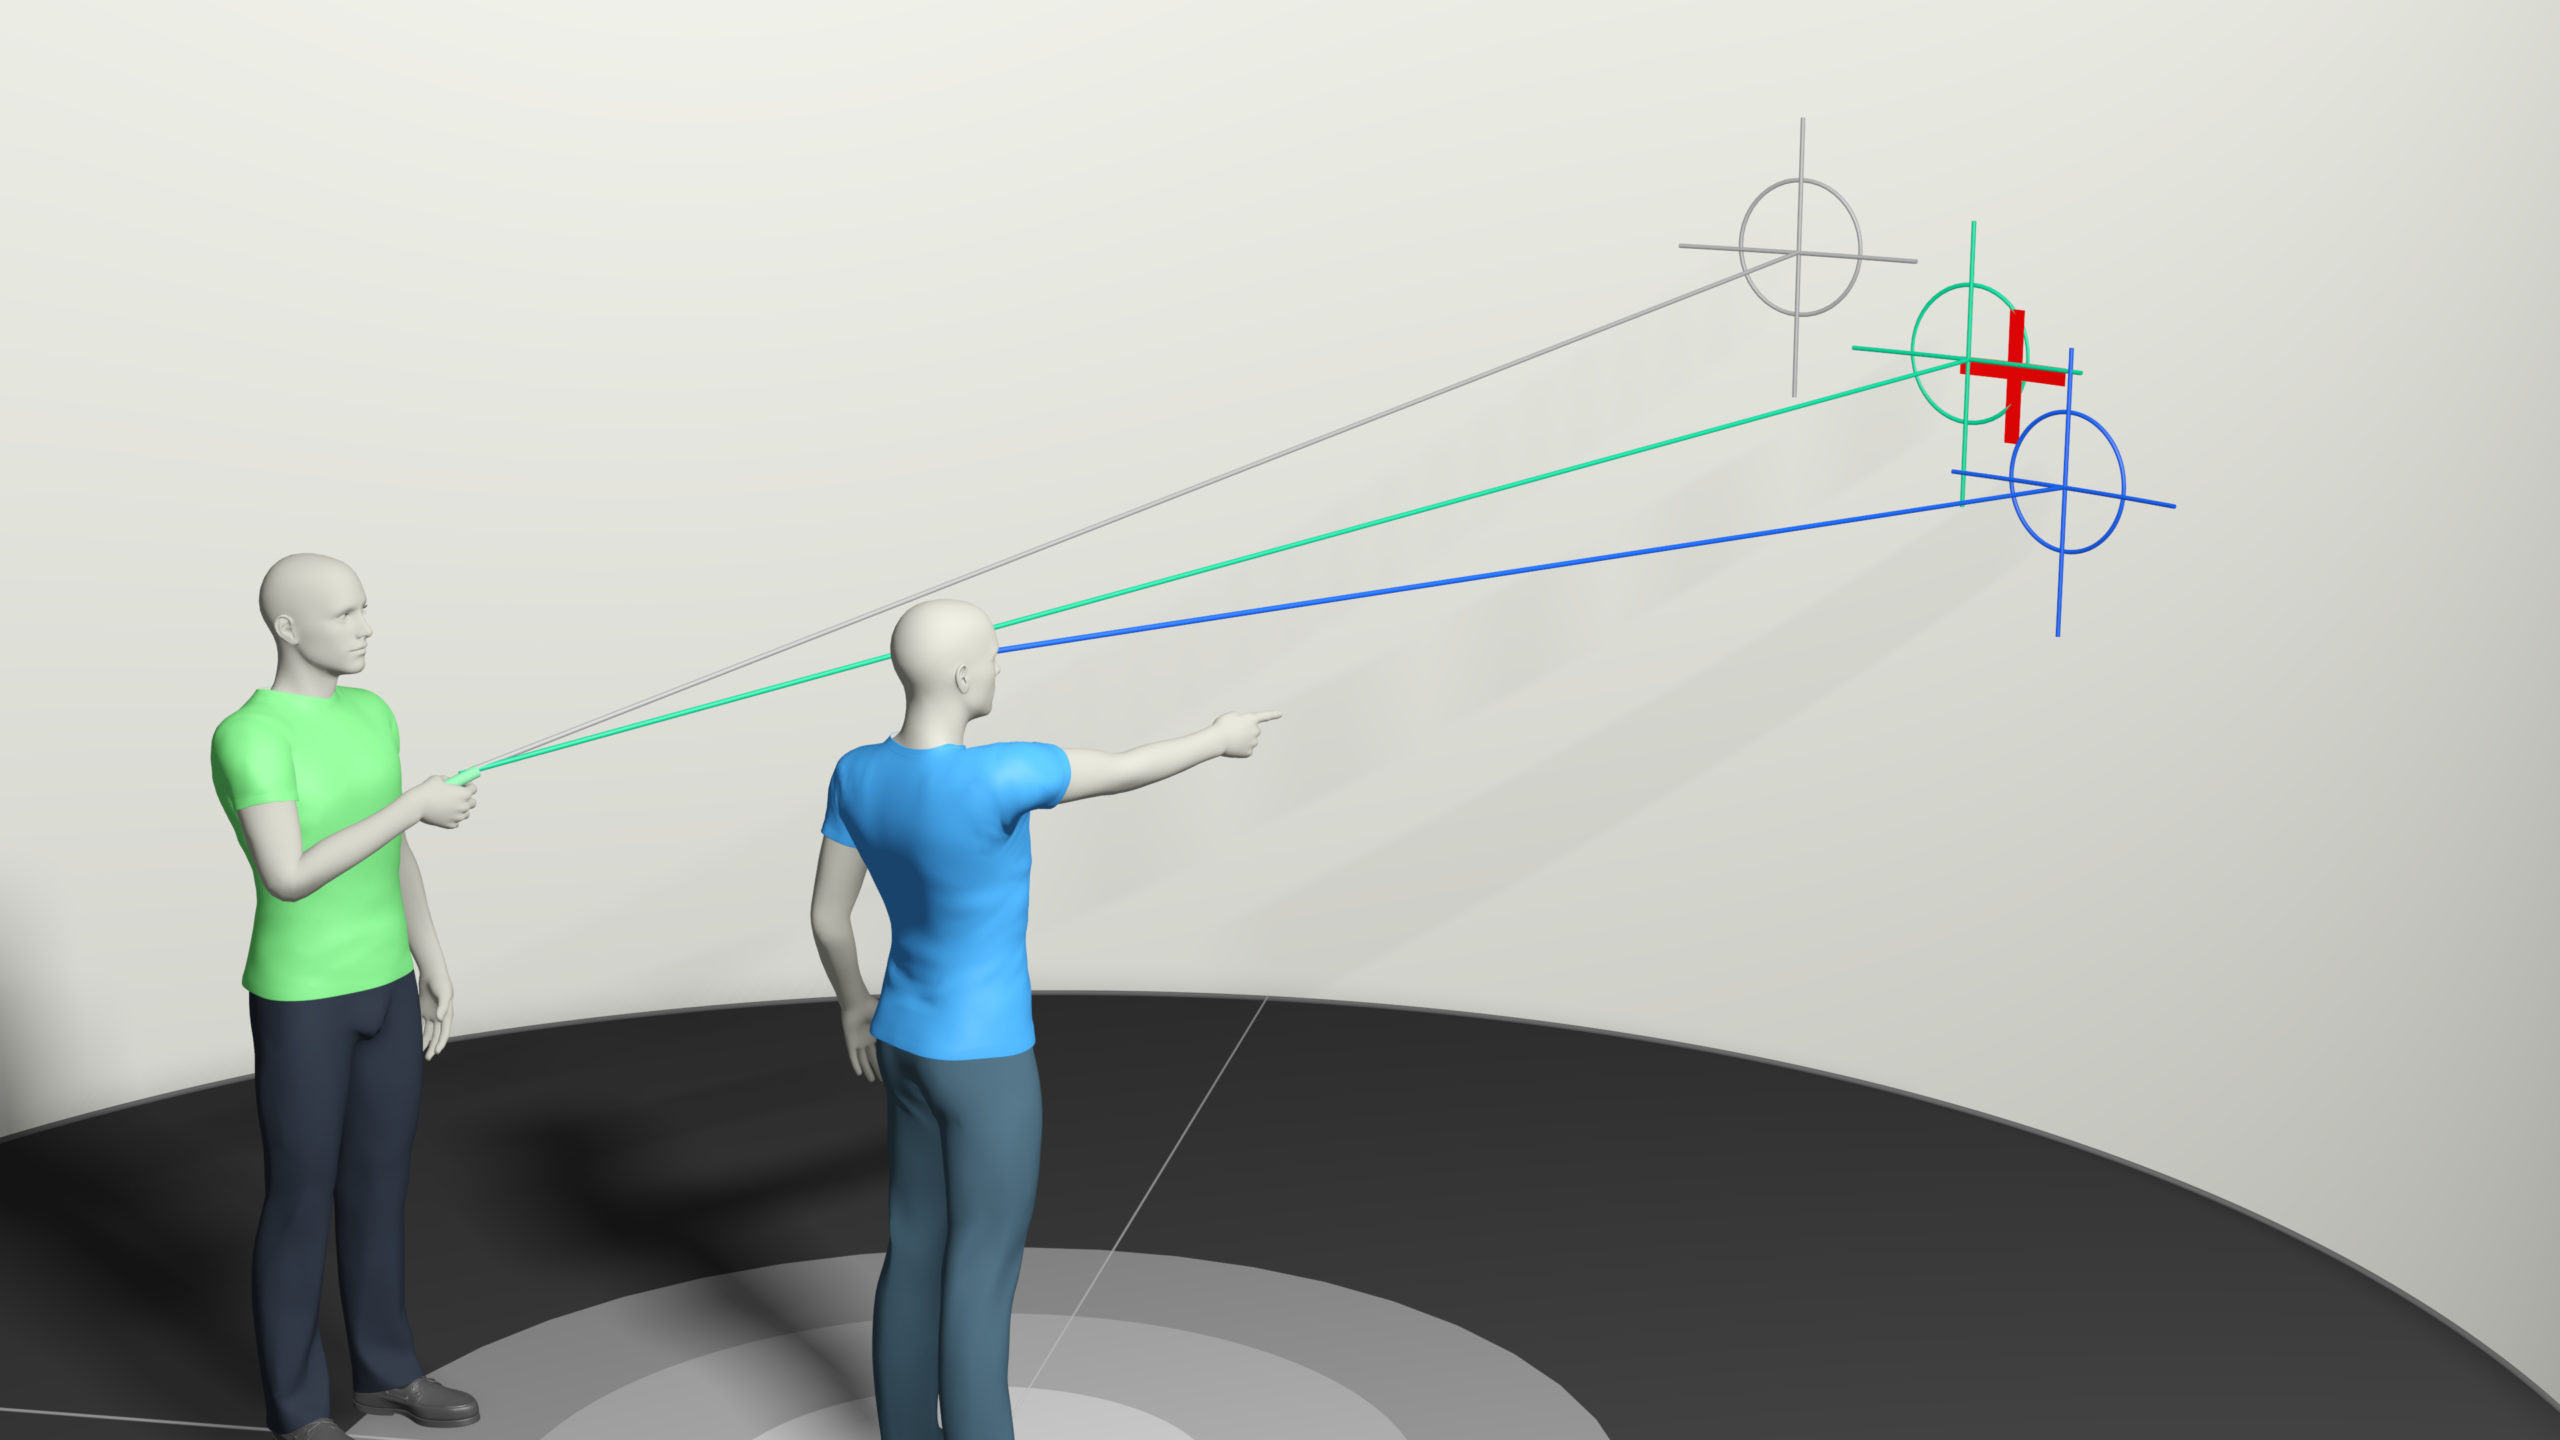 Improving Humans' Ability to Interpret Deictic Gestures in Virtual Reality